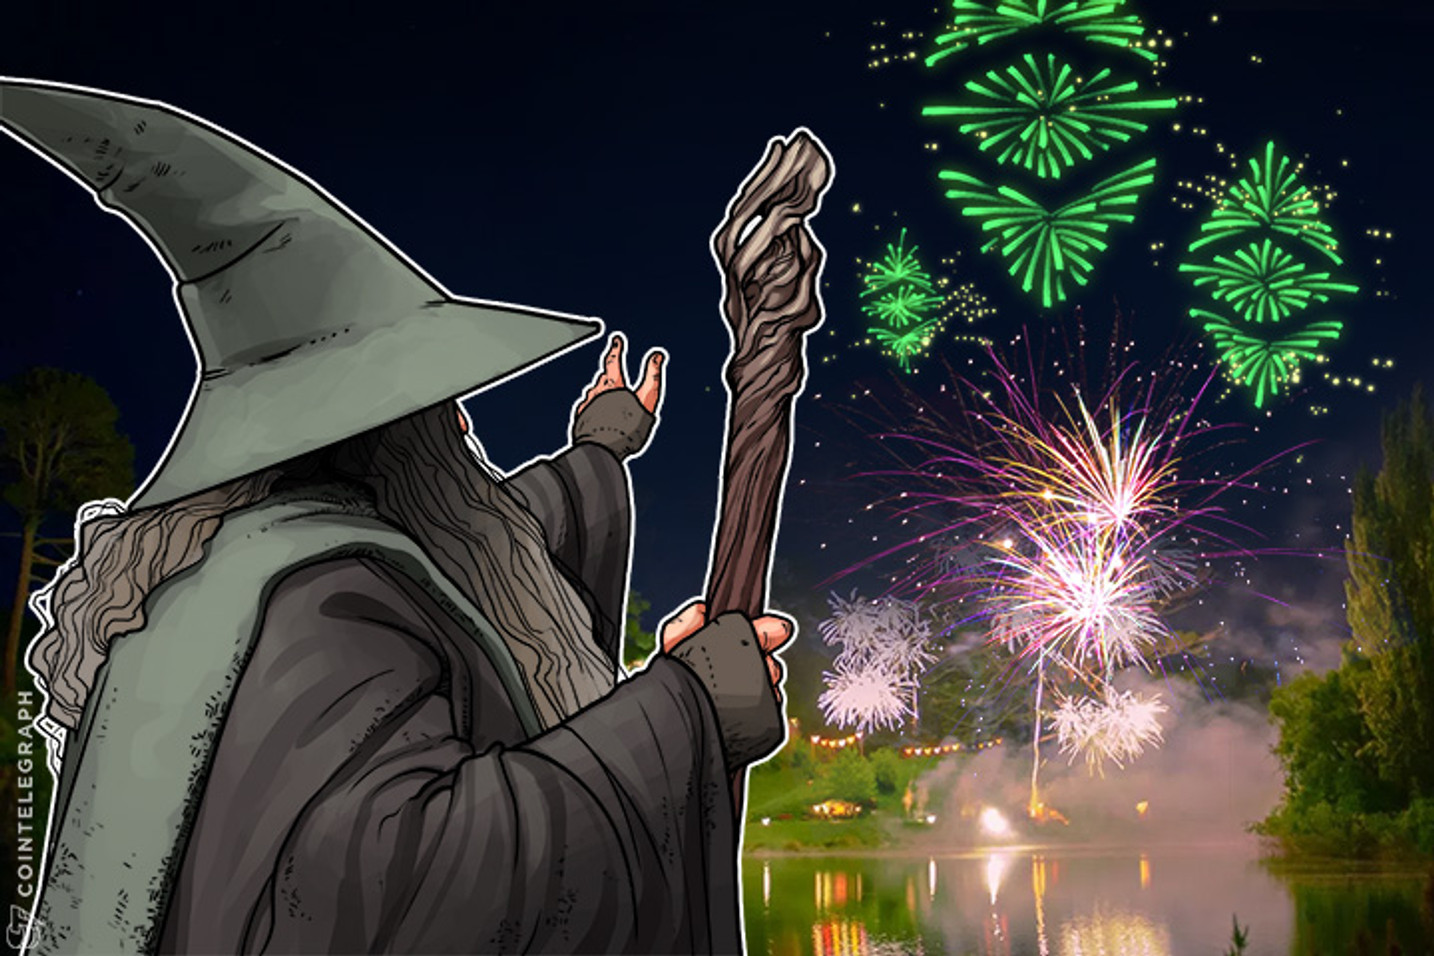 Ethereum Classic Hits $1.3 Billion Market Cap, Boosted By Consensus, Silbert